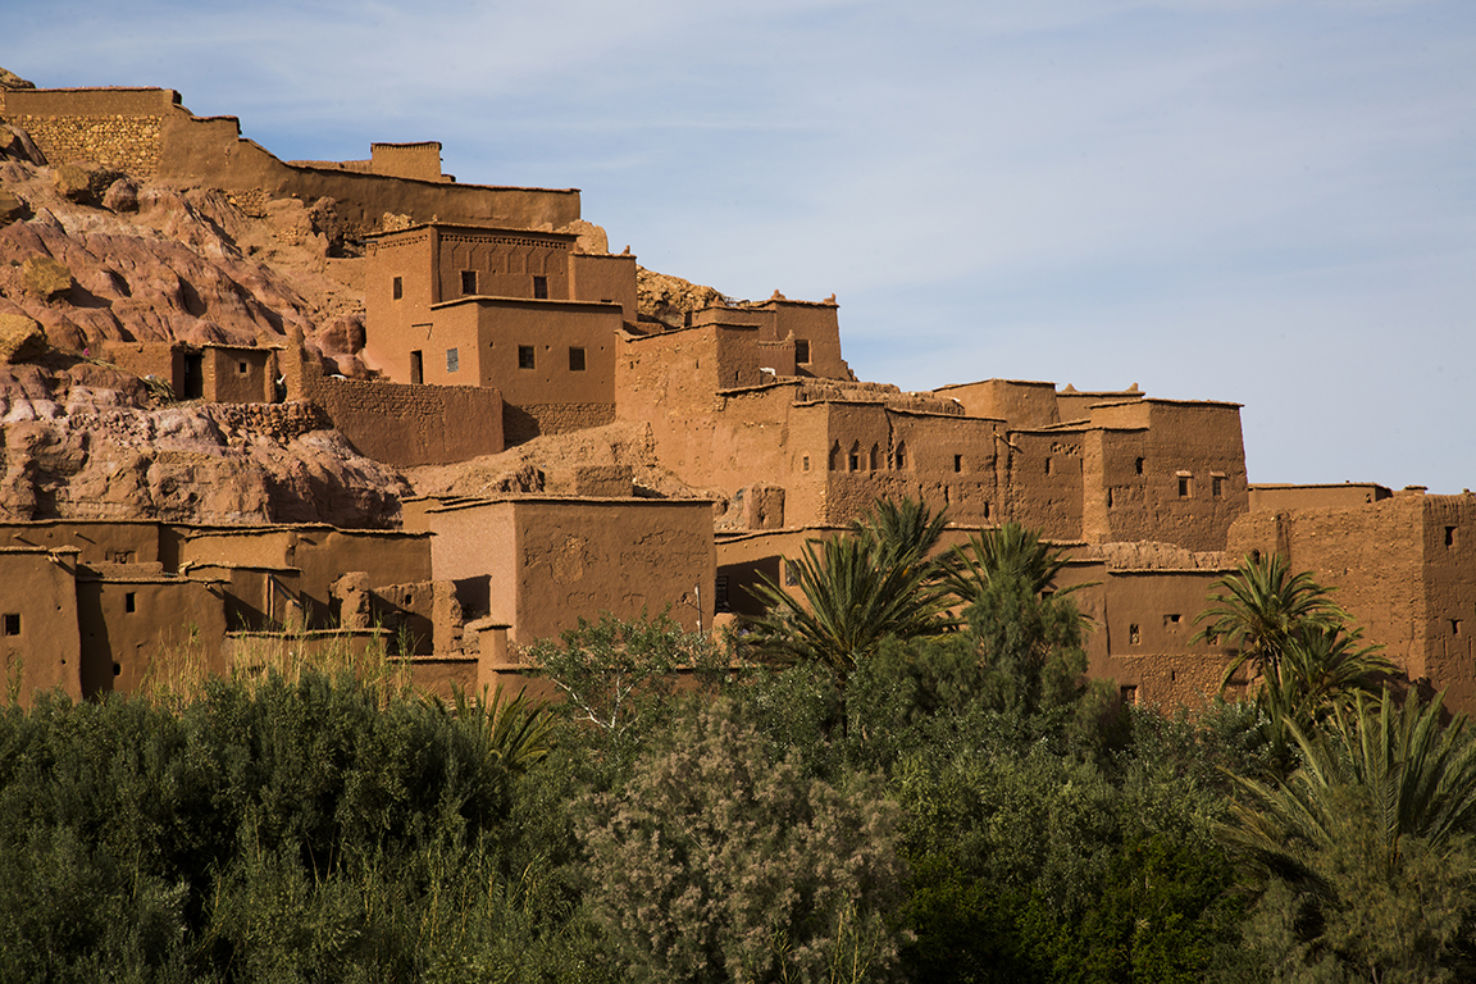 Ait Benhaddou is a UNESCO World Heritage site and the location of several biblical-themed films